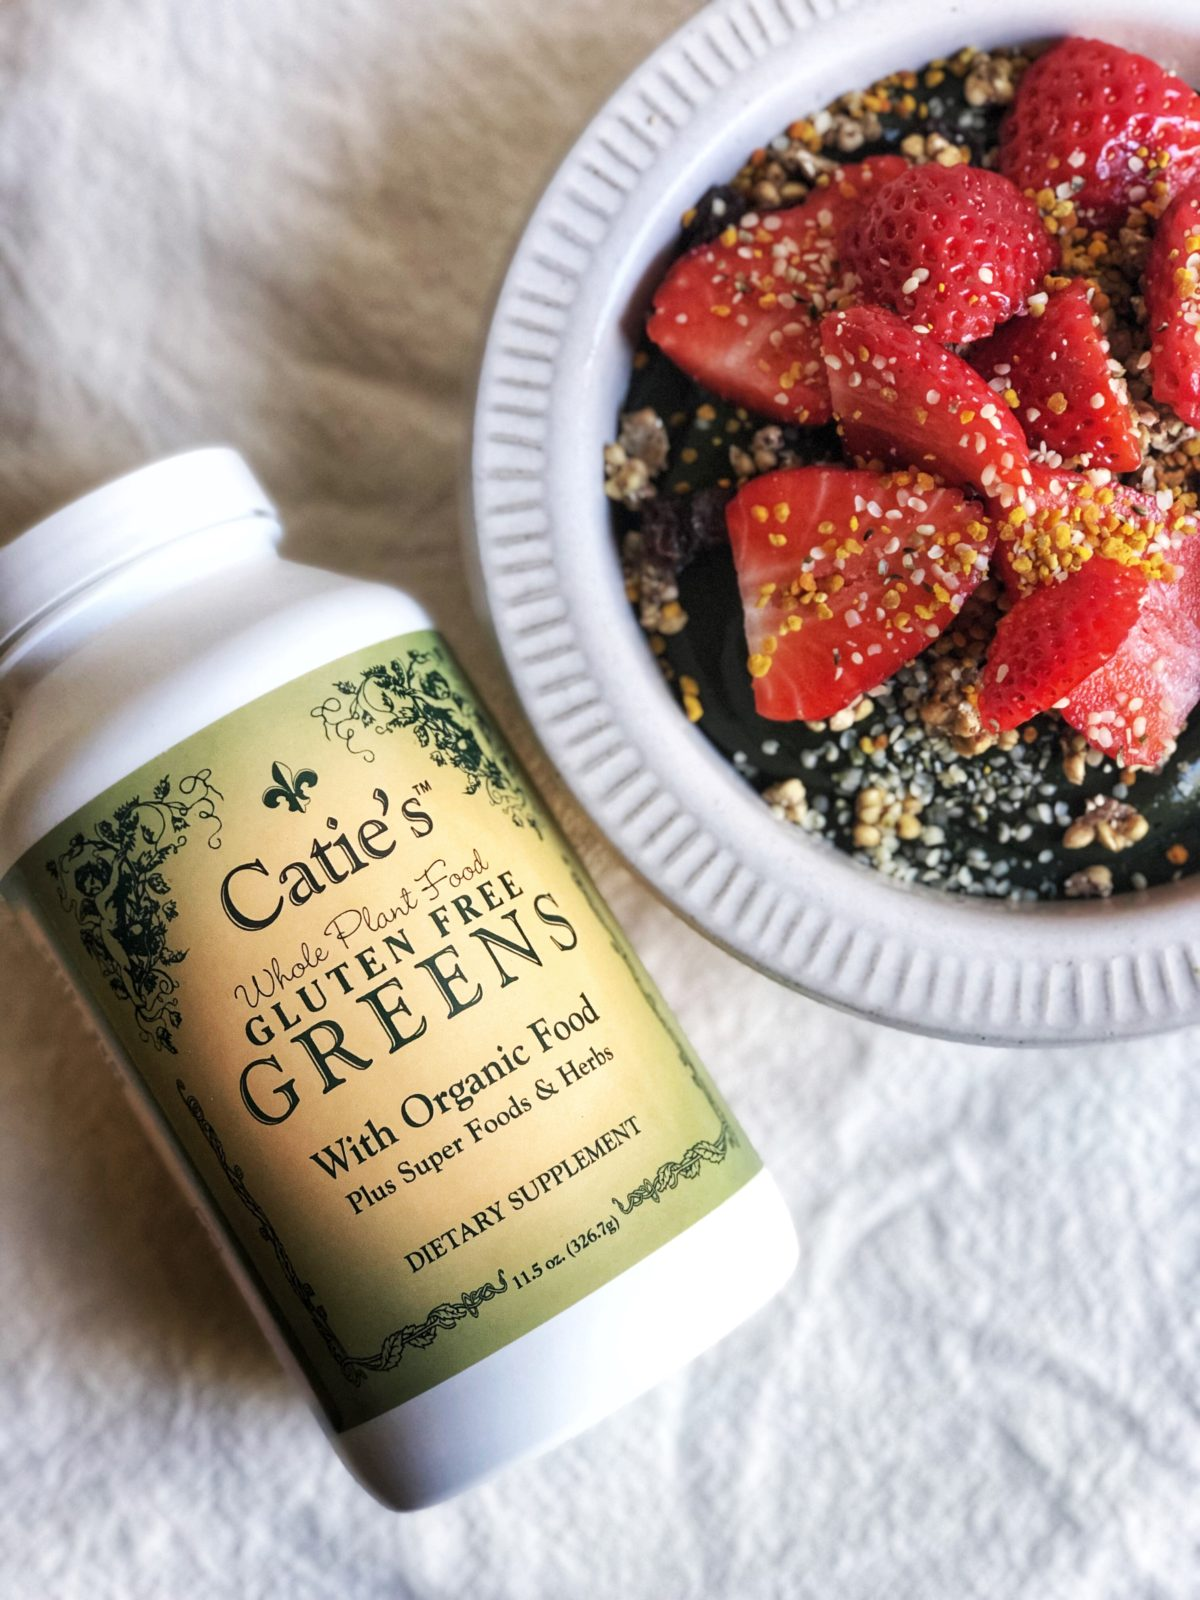 Catie's Organics Plant Based Supplements